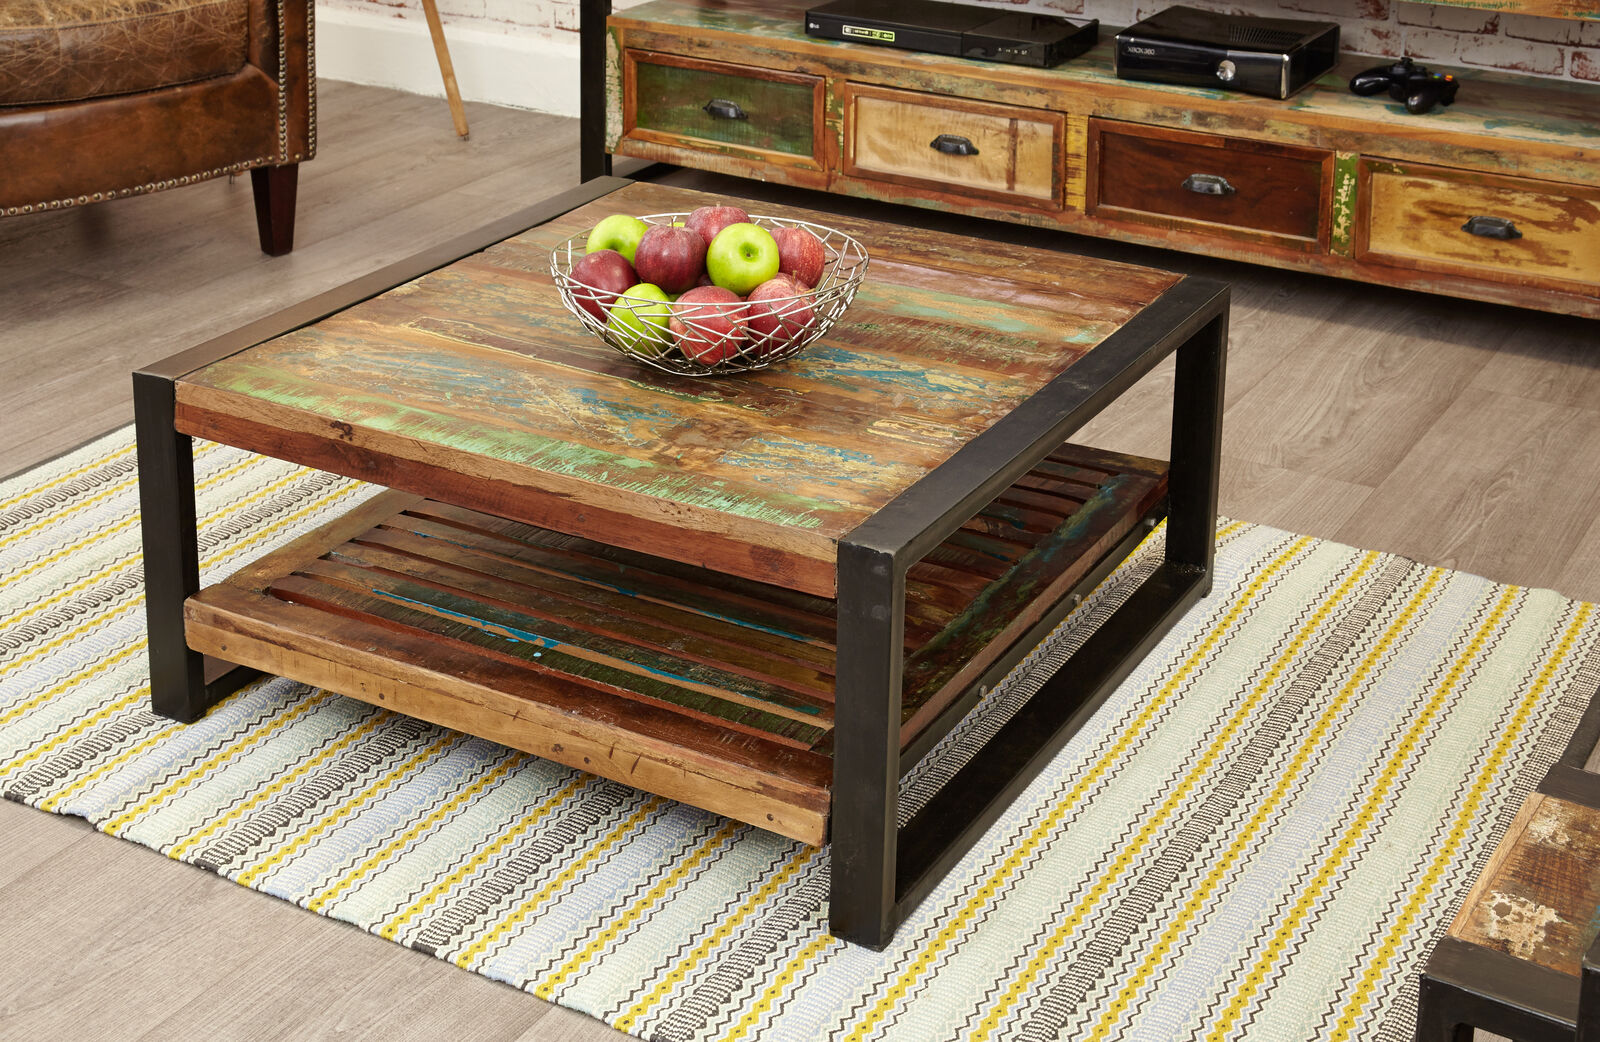 Details About Urban Chic Reclaimed Wood Coffee Table With Shelf Storage Large Steel Frame